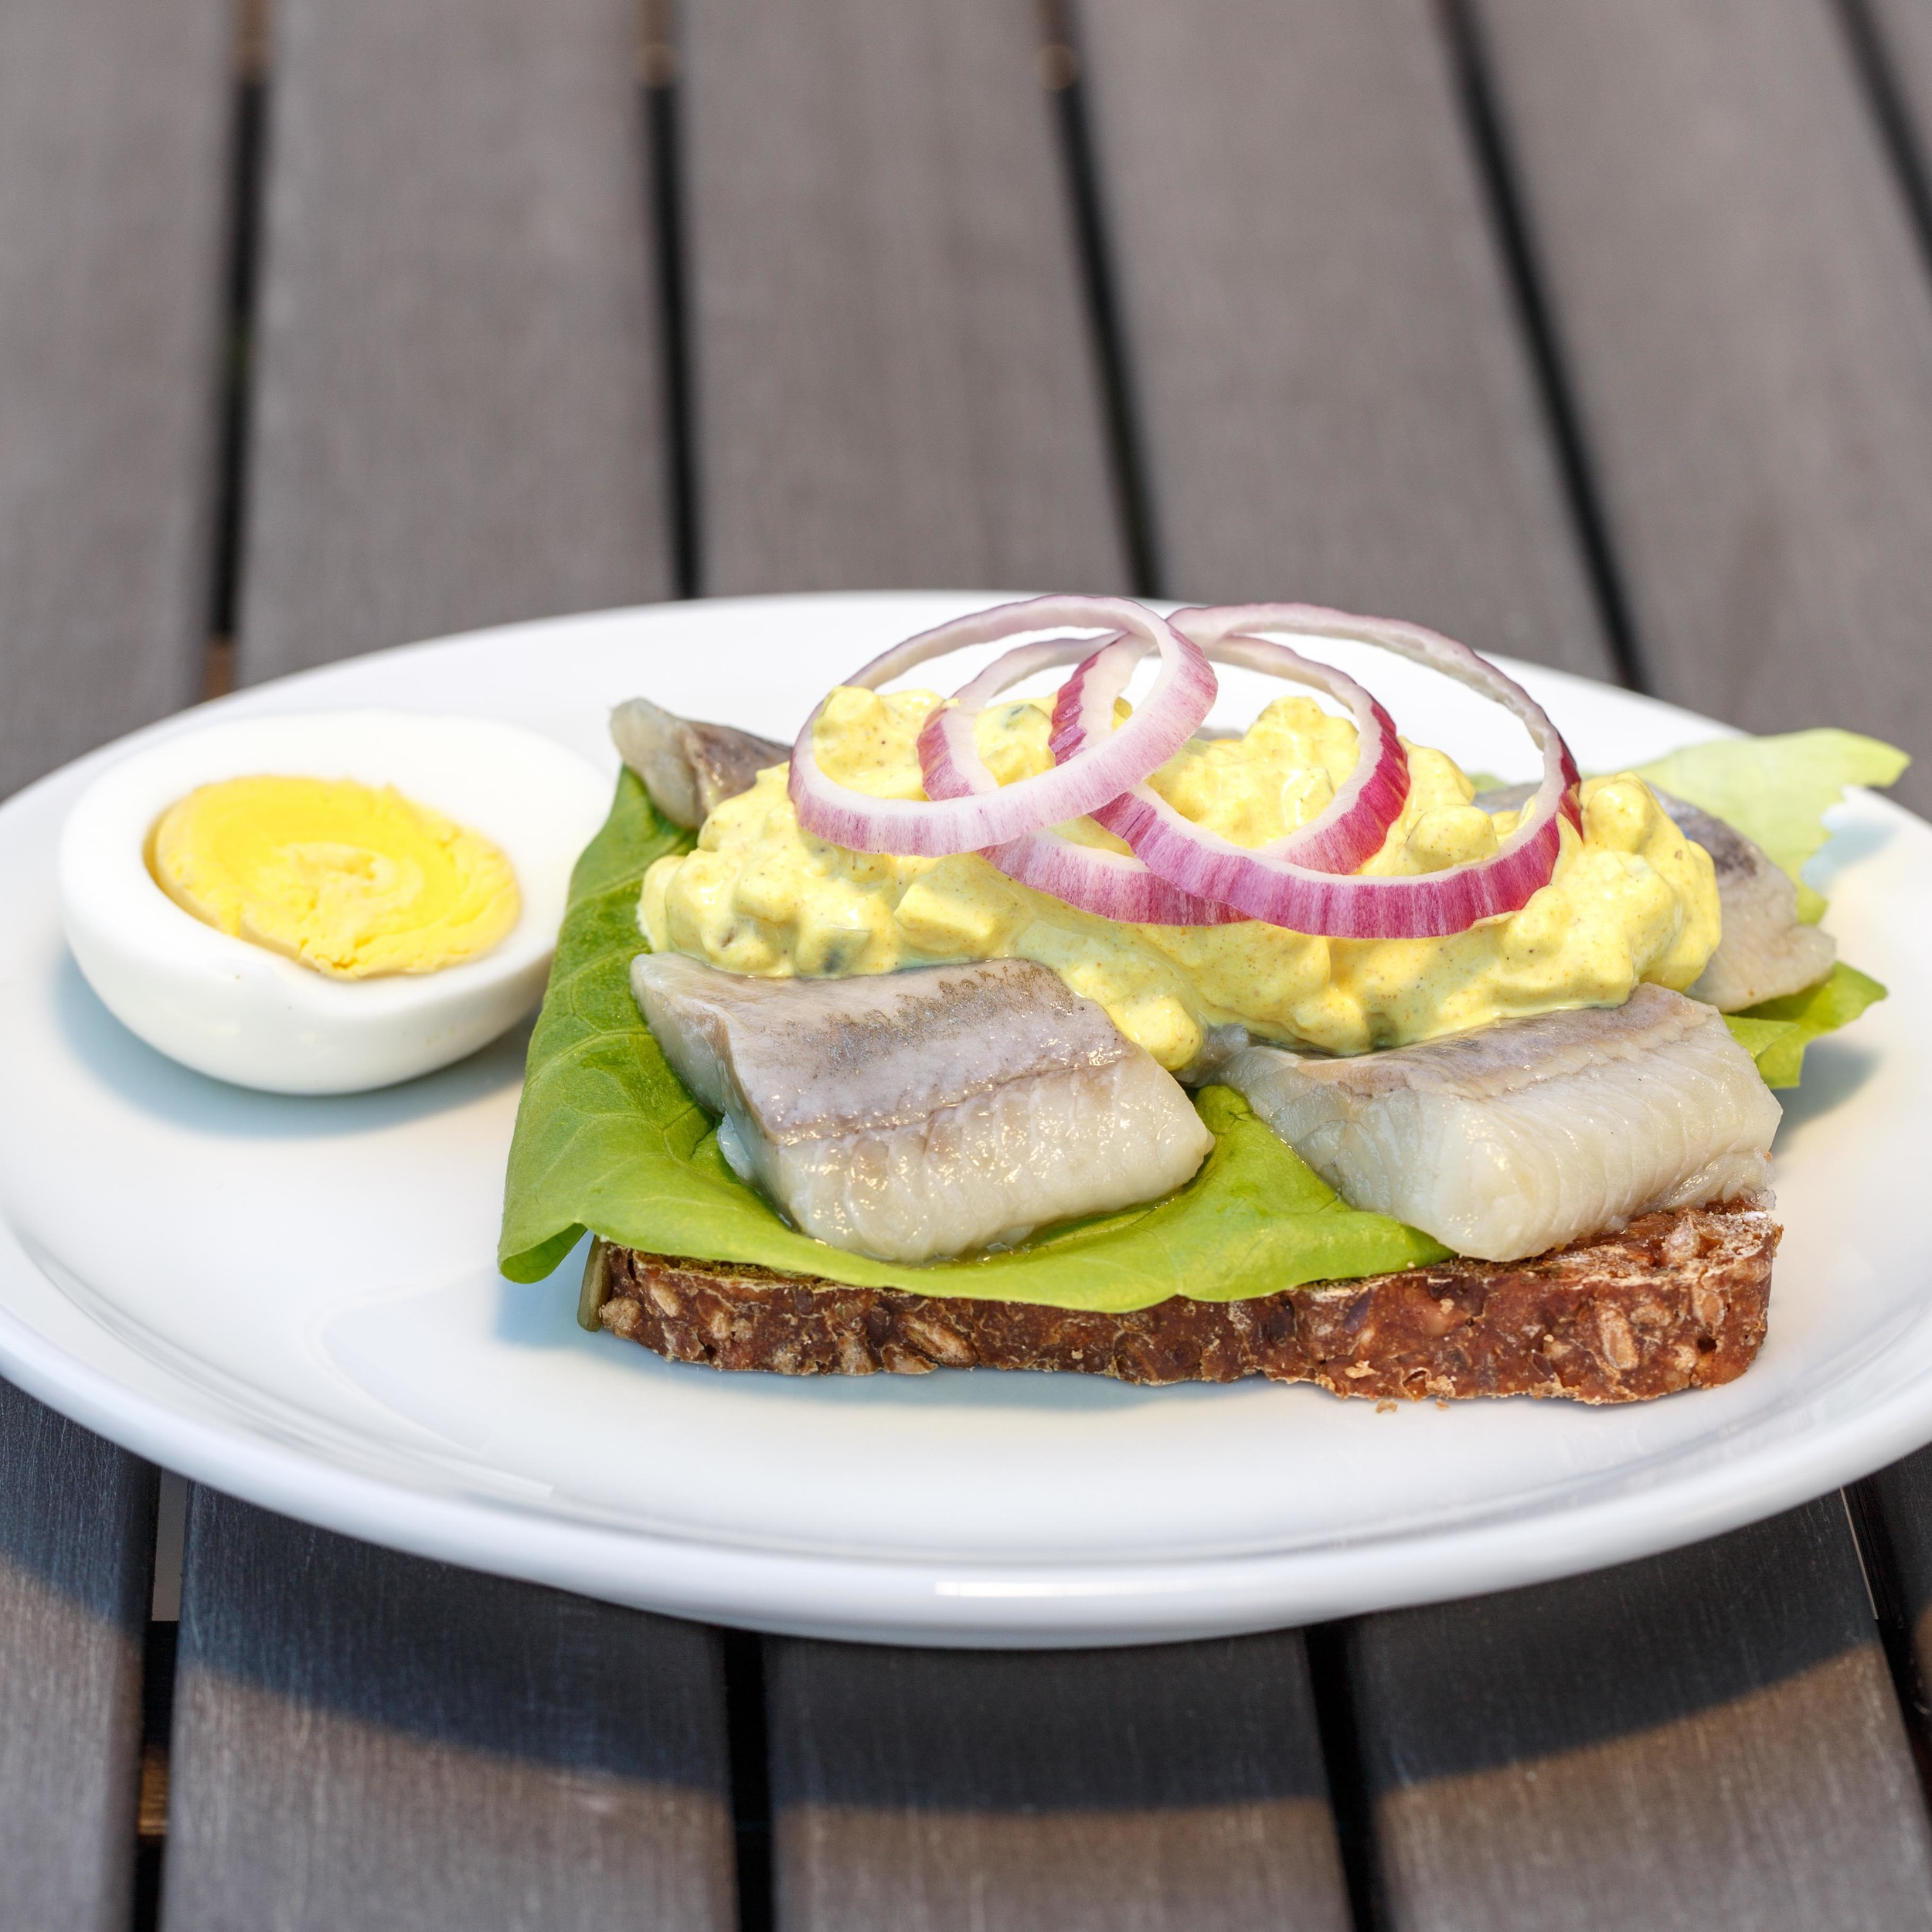 Curry Salad on pickled herring